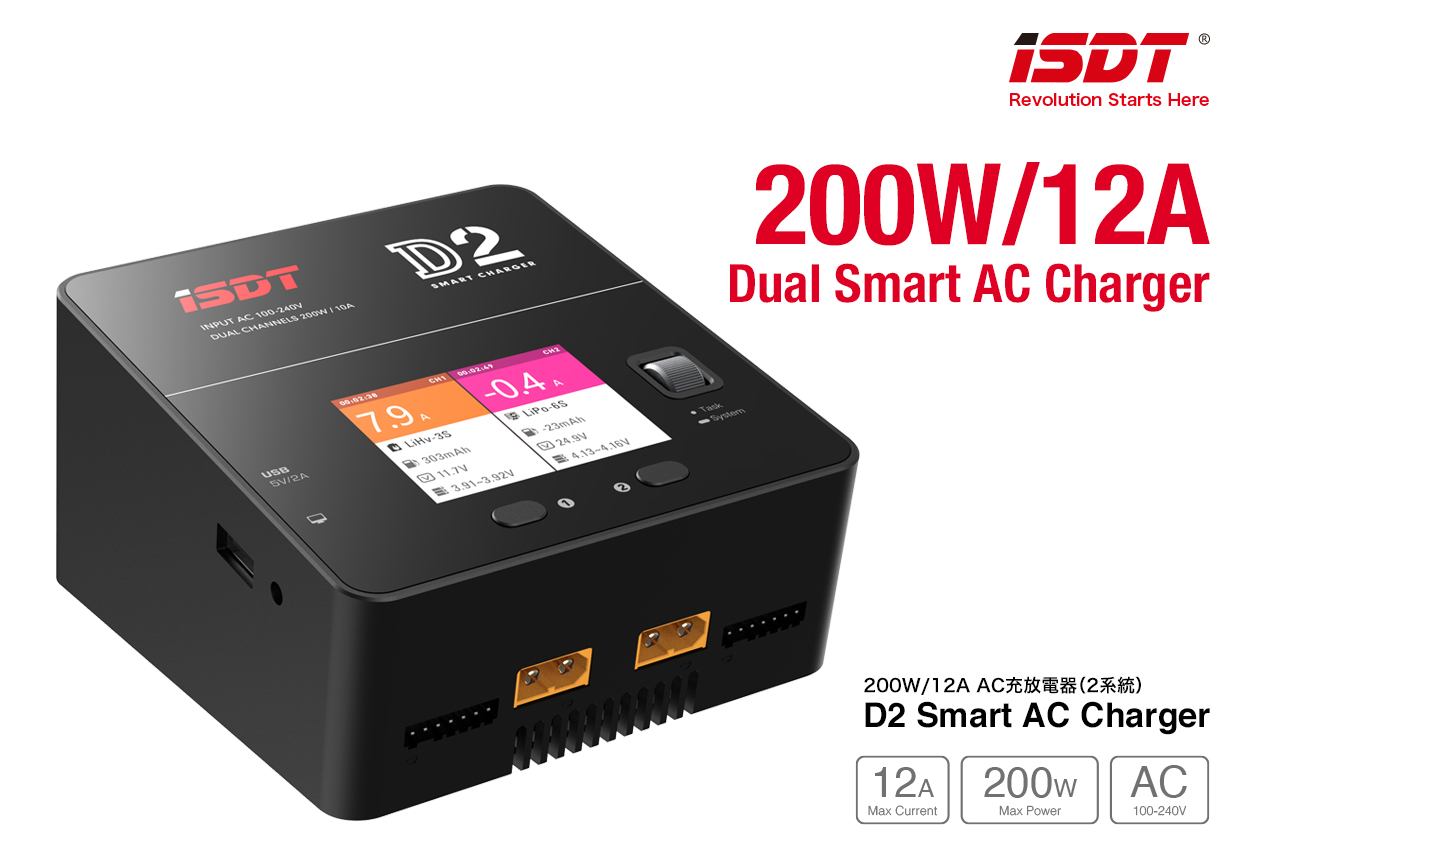 G-FORCE GDT101 D2 Smart AC Charger